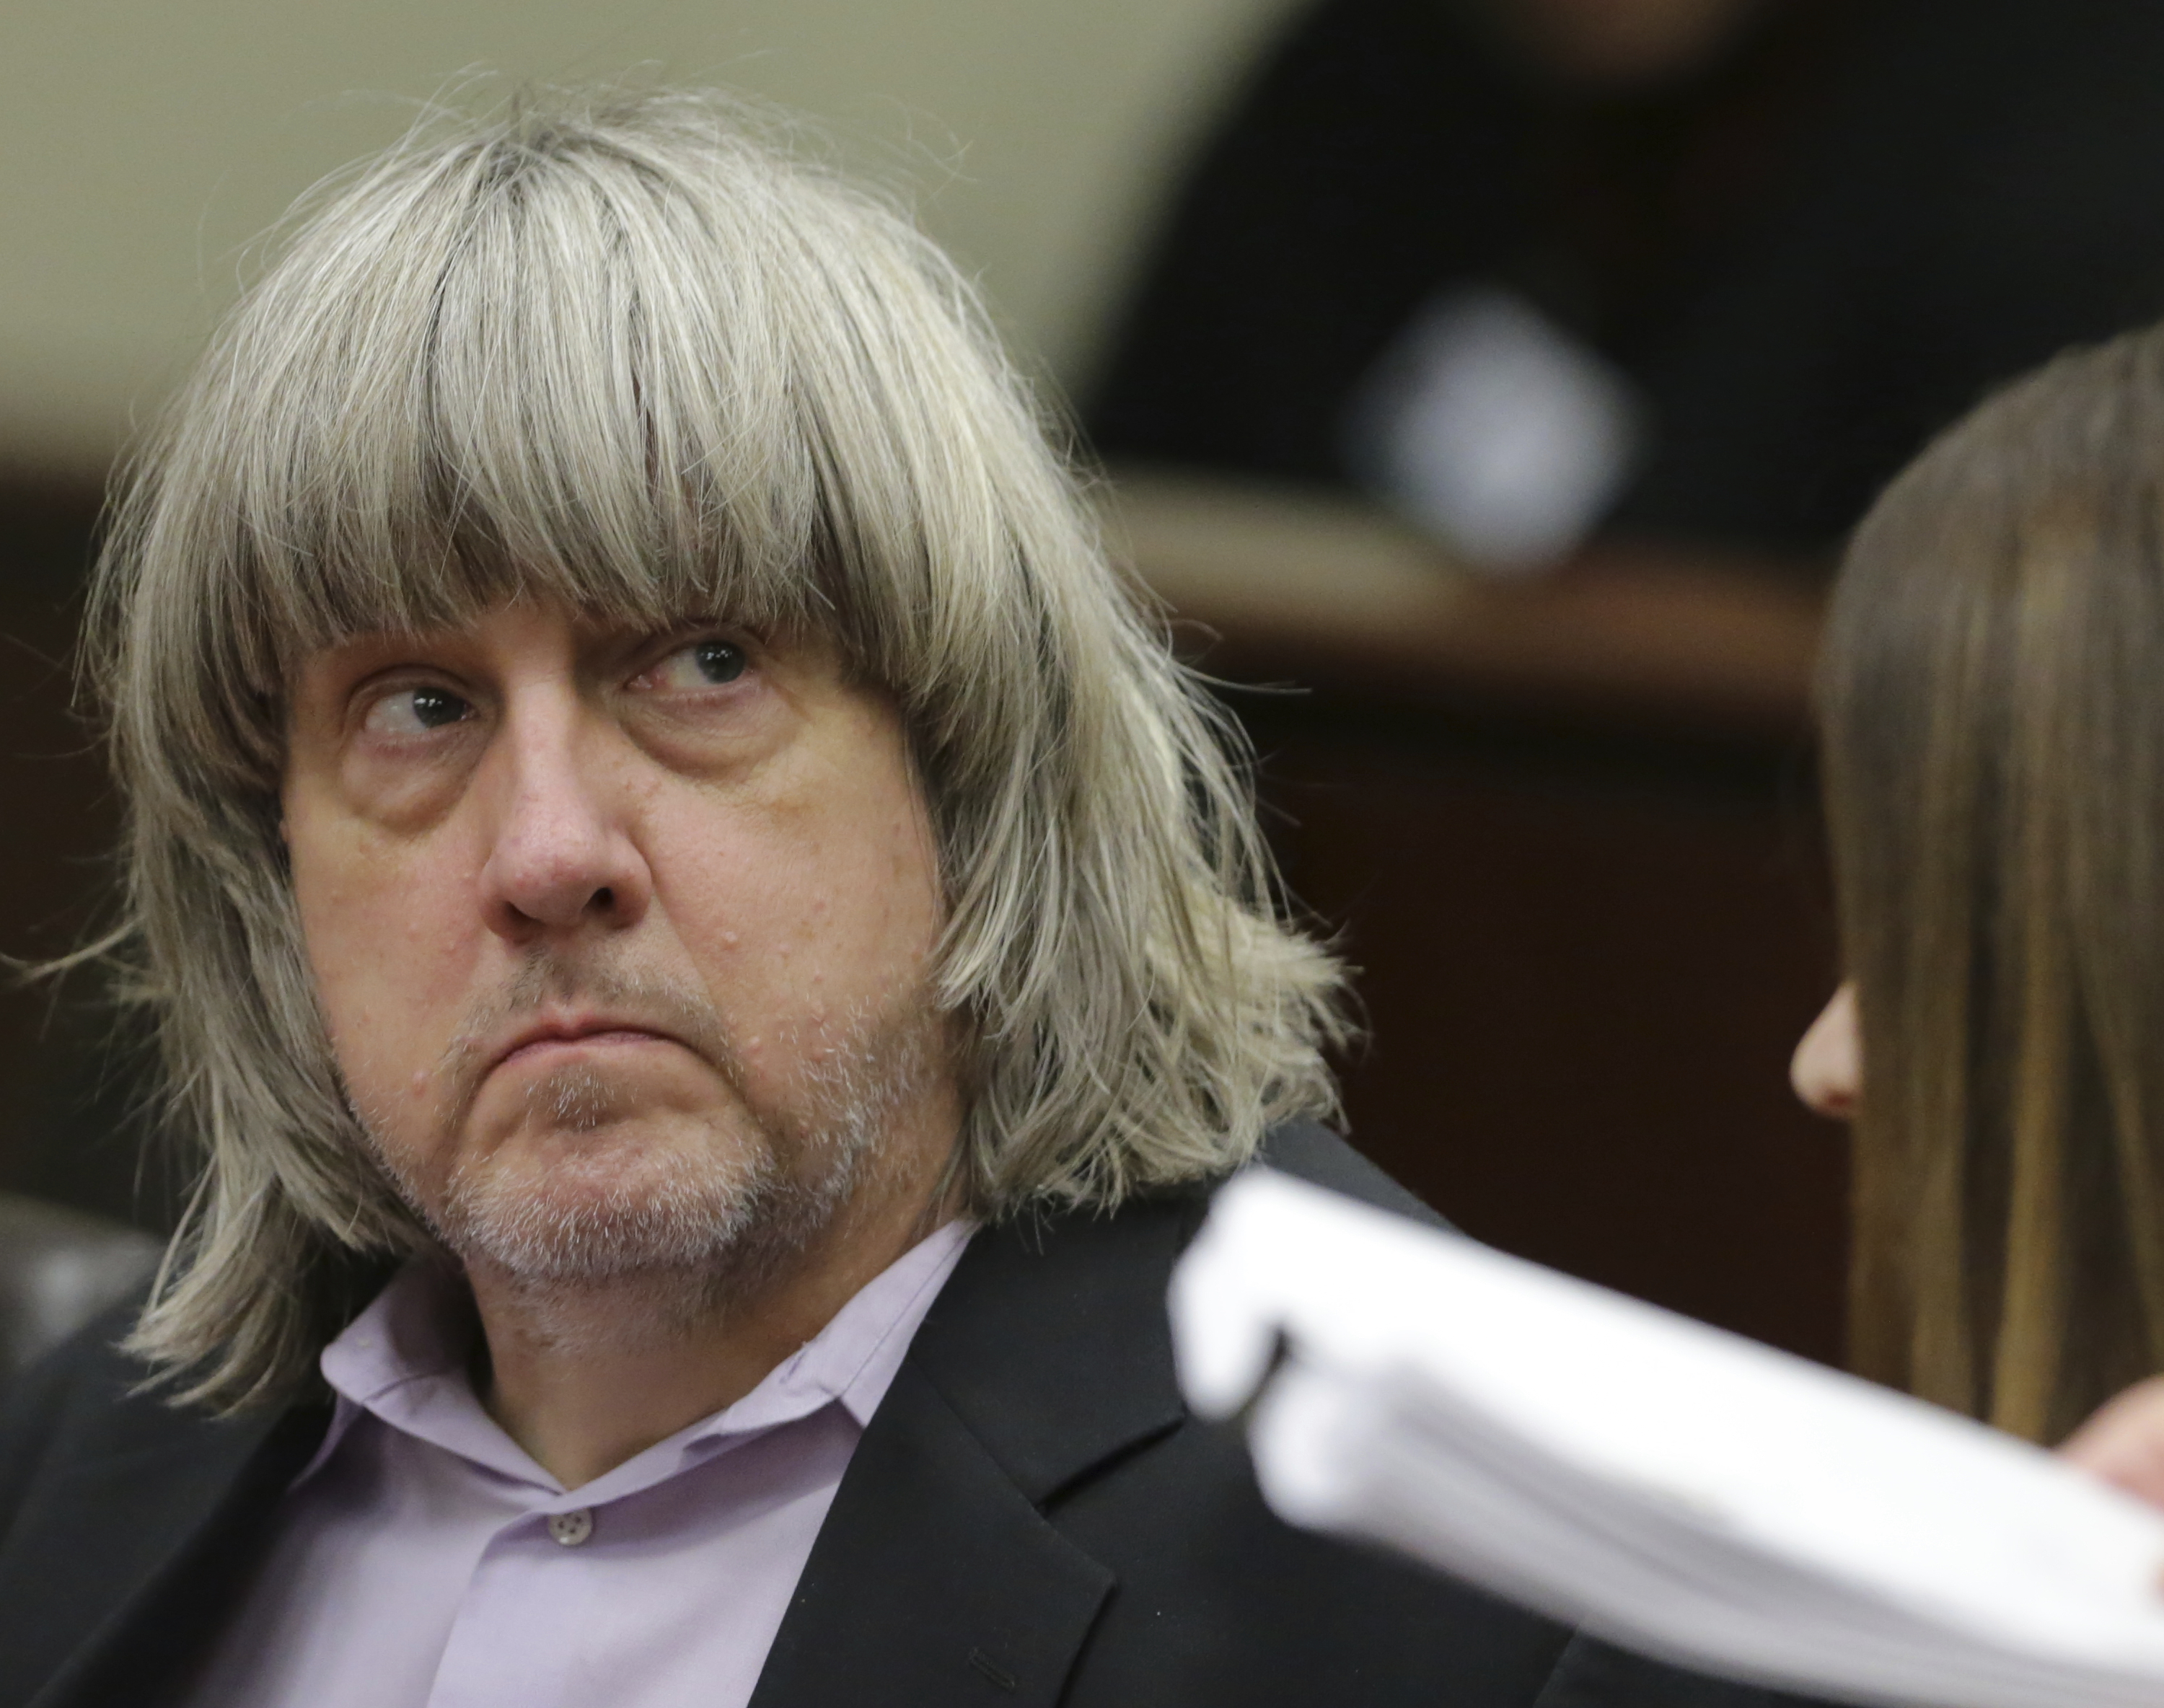 David Allen Turpin appears in court for his arraignment in Riverside, Calif., Thursday, Jan. 18, 2018. Prosecutors filed 12 counts of torture, seven counts of dependent adult abuse, six counts of child abuse and 12 counts of false imprisonment against Turpin and his wife, Louise Anna Turpin. Authorities say the abuse left the children malnourished, undersized and with cognitive impairments. (Terry Pierson/The Press-Enterprise via AP, Pool)